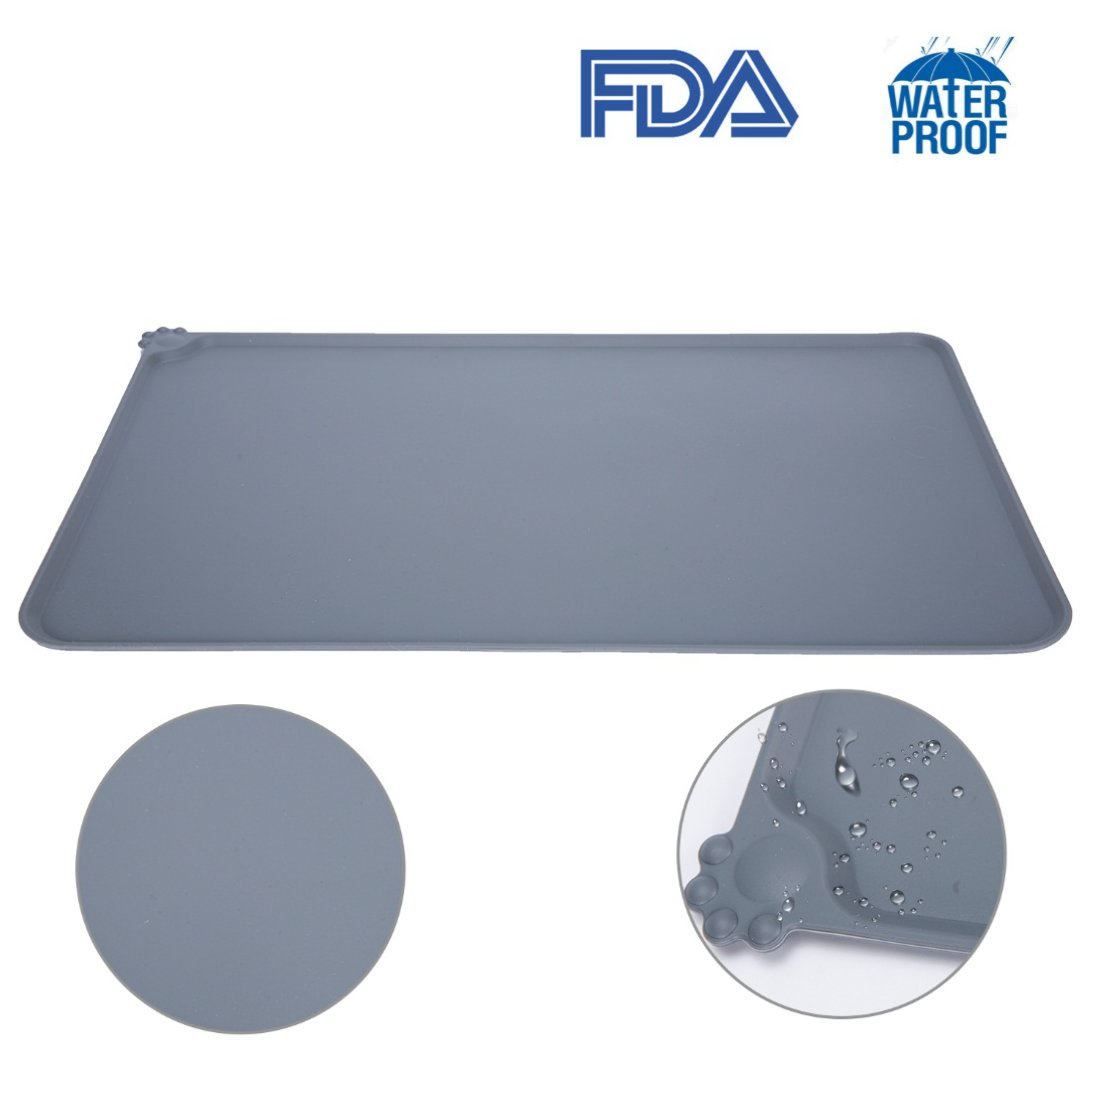 Dog Food Mat Premium FDA Approved Silicone OUMAL Waterproof Bowl Mat Non-Skid No Mess Feeding Mat for Pets